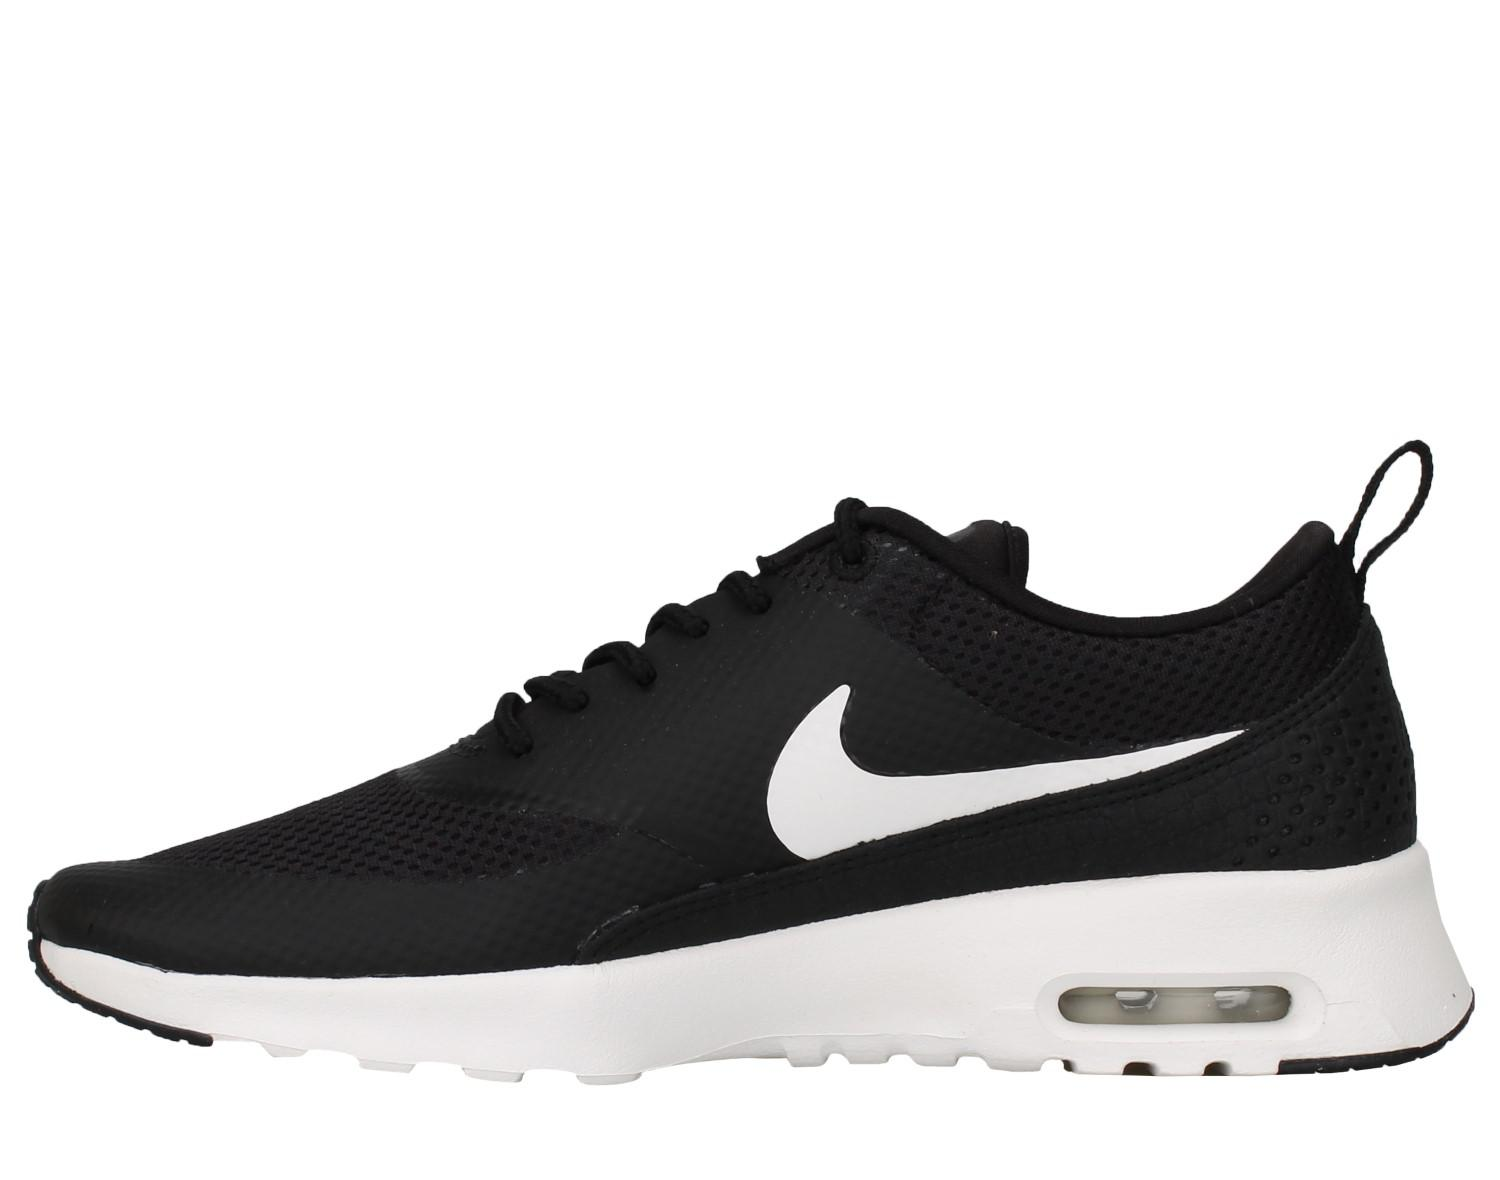 Nike Womens Air Max Thea Running Shoe BlackSummit White 8.5 B(M) US